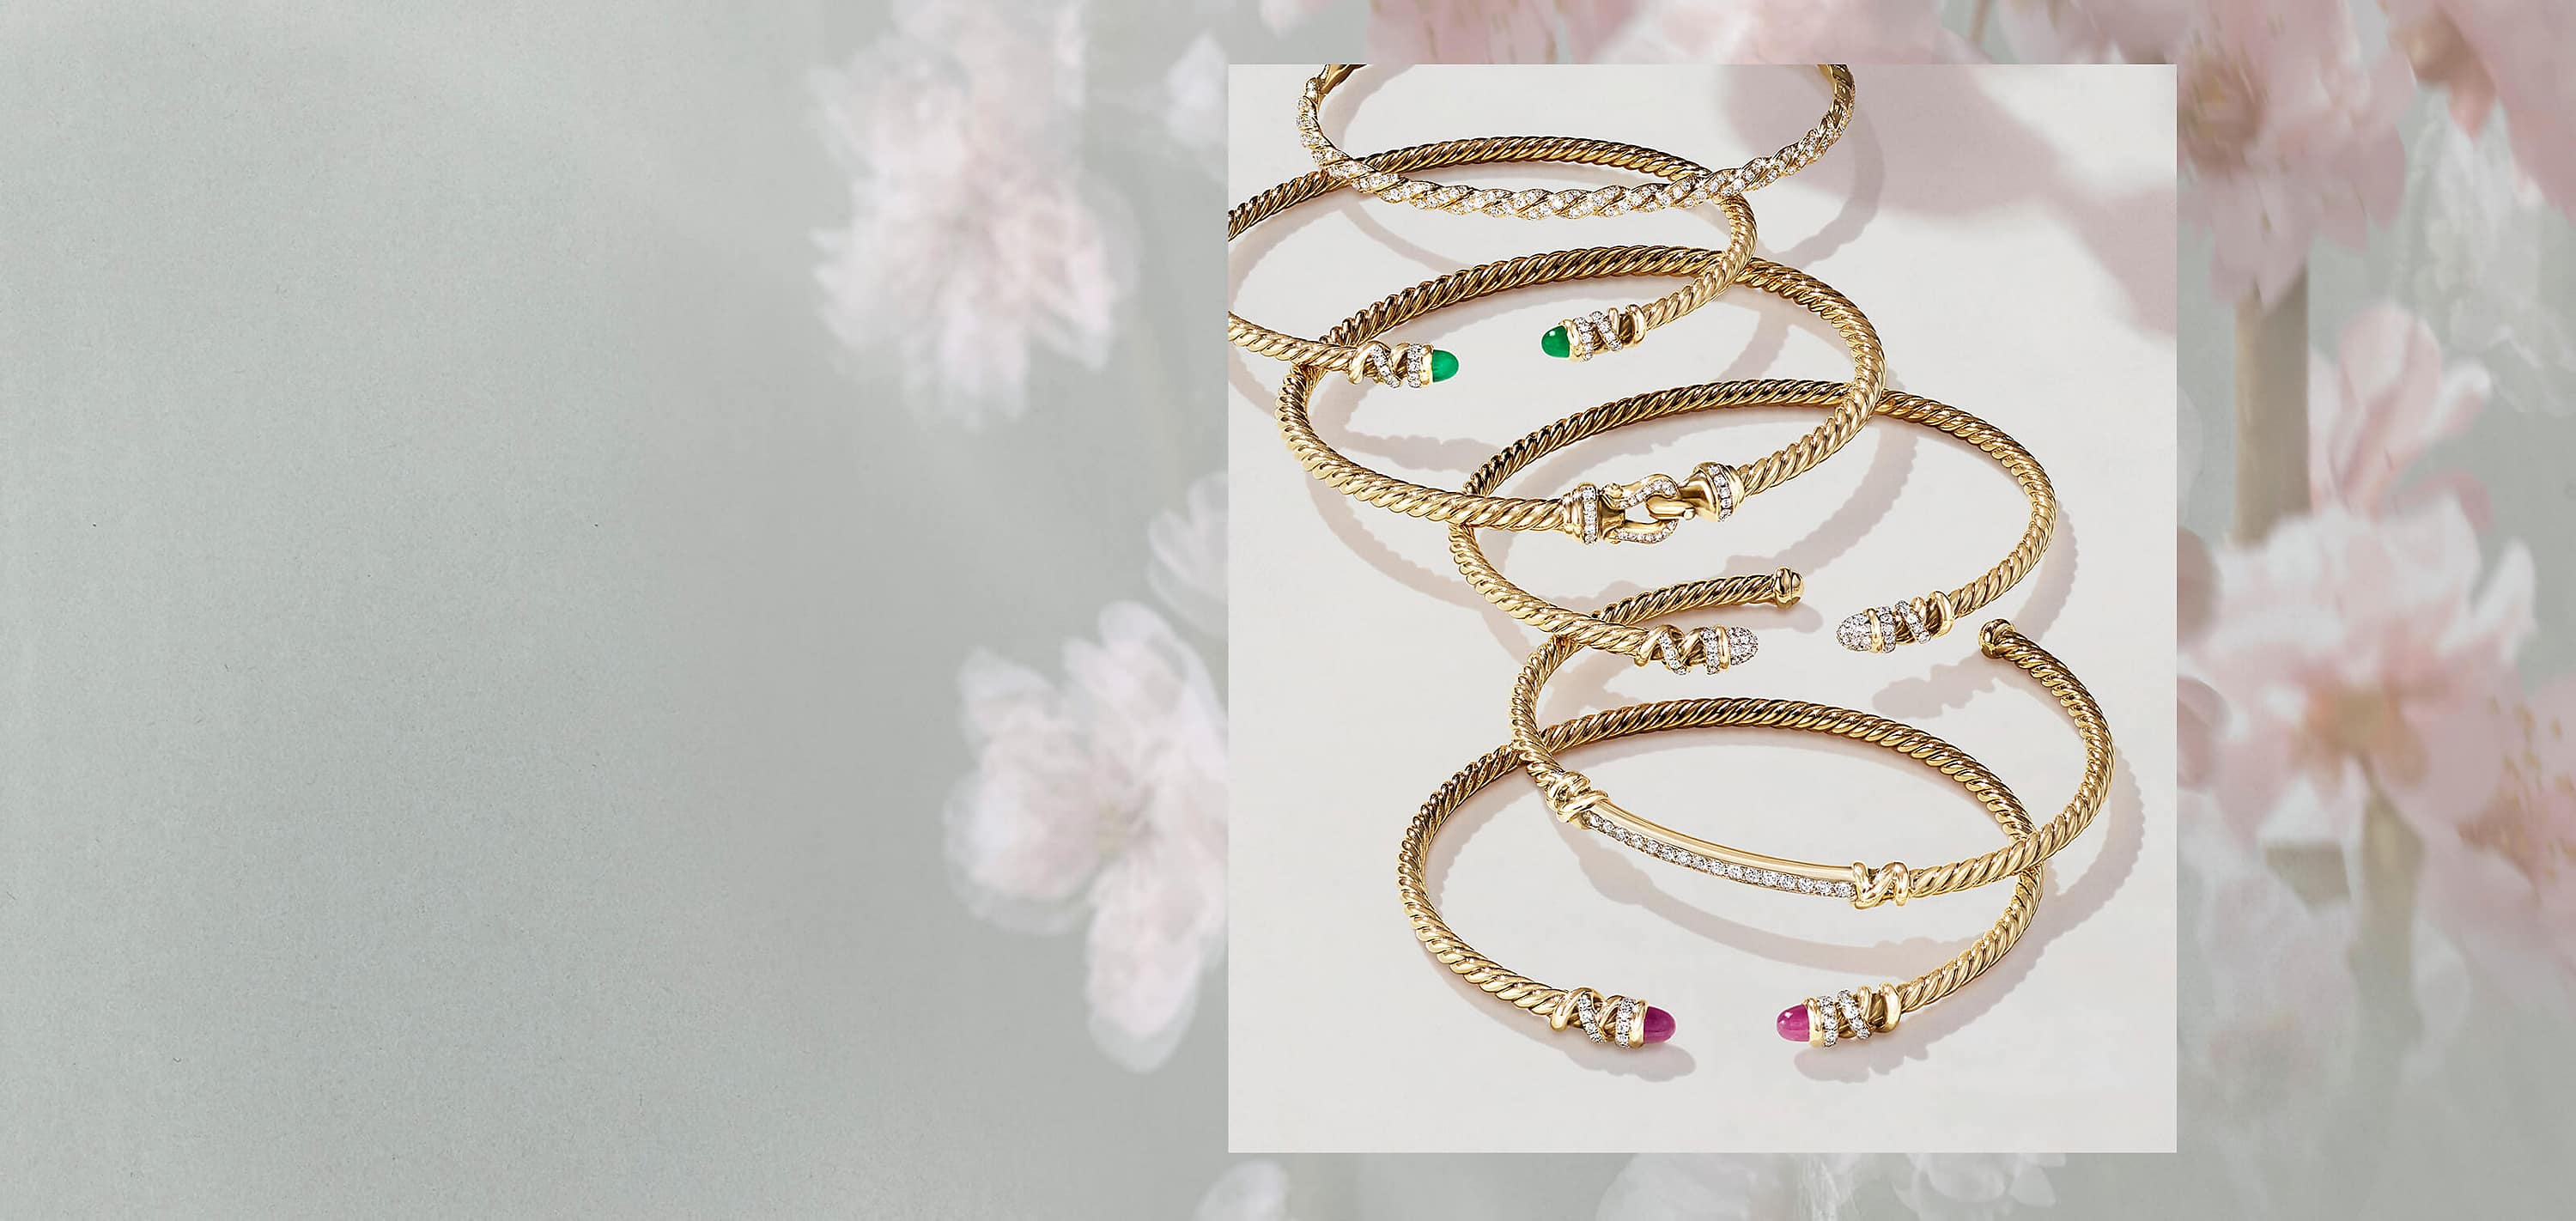 A photo collage places a color photo of six David Yurman Cable bracelets inside a border of soft-focus magnolia flowers. The center image shows the bracelets scattered on a white background. The jewelry is crafted from 18K yellow gold with pavé diamonds and with or without emeralds or rubies.